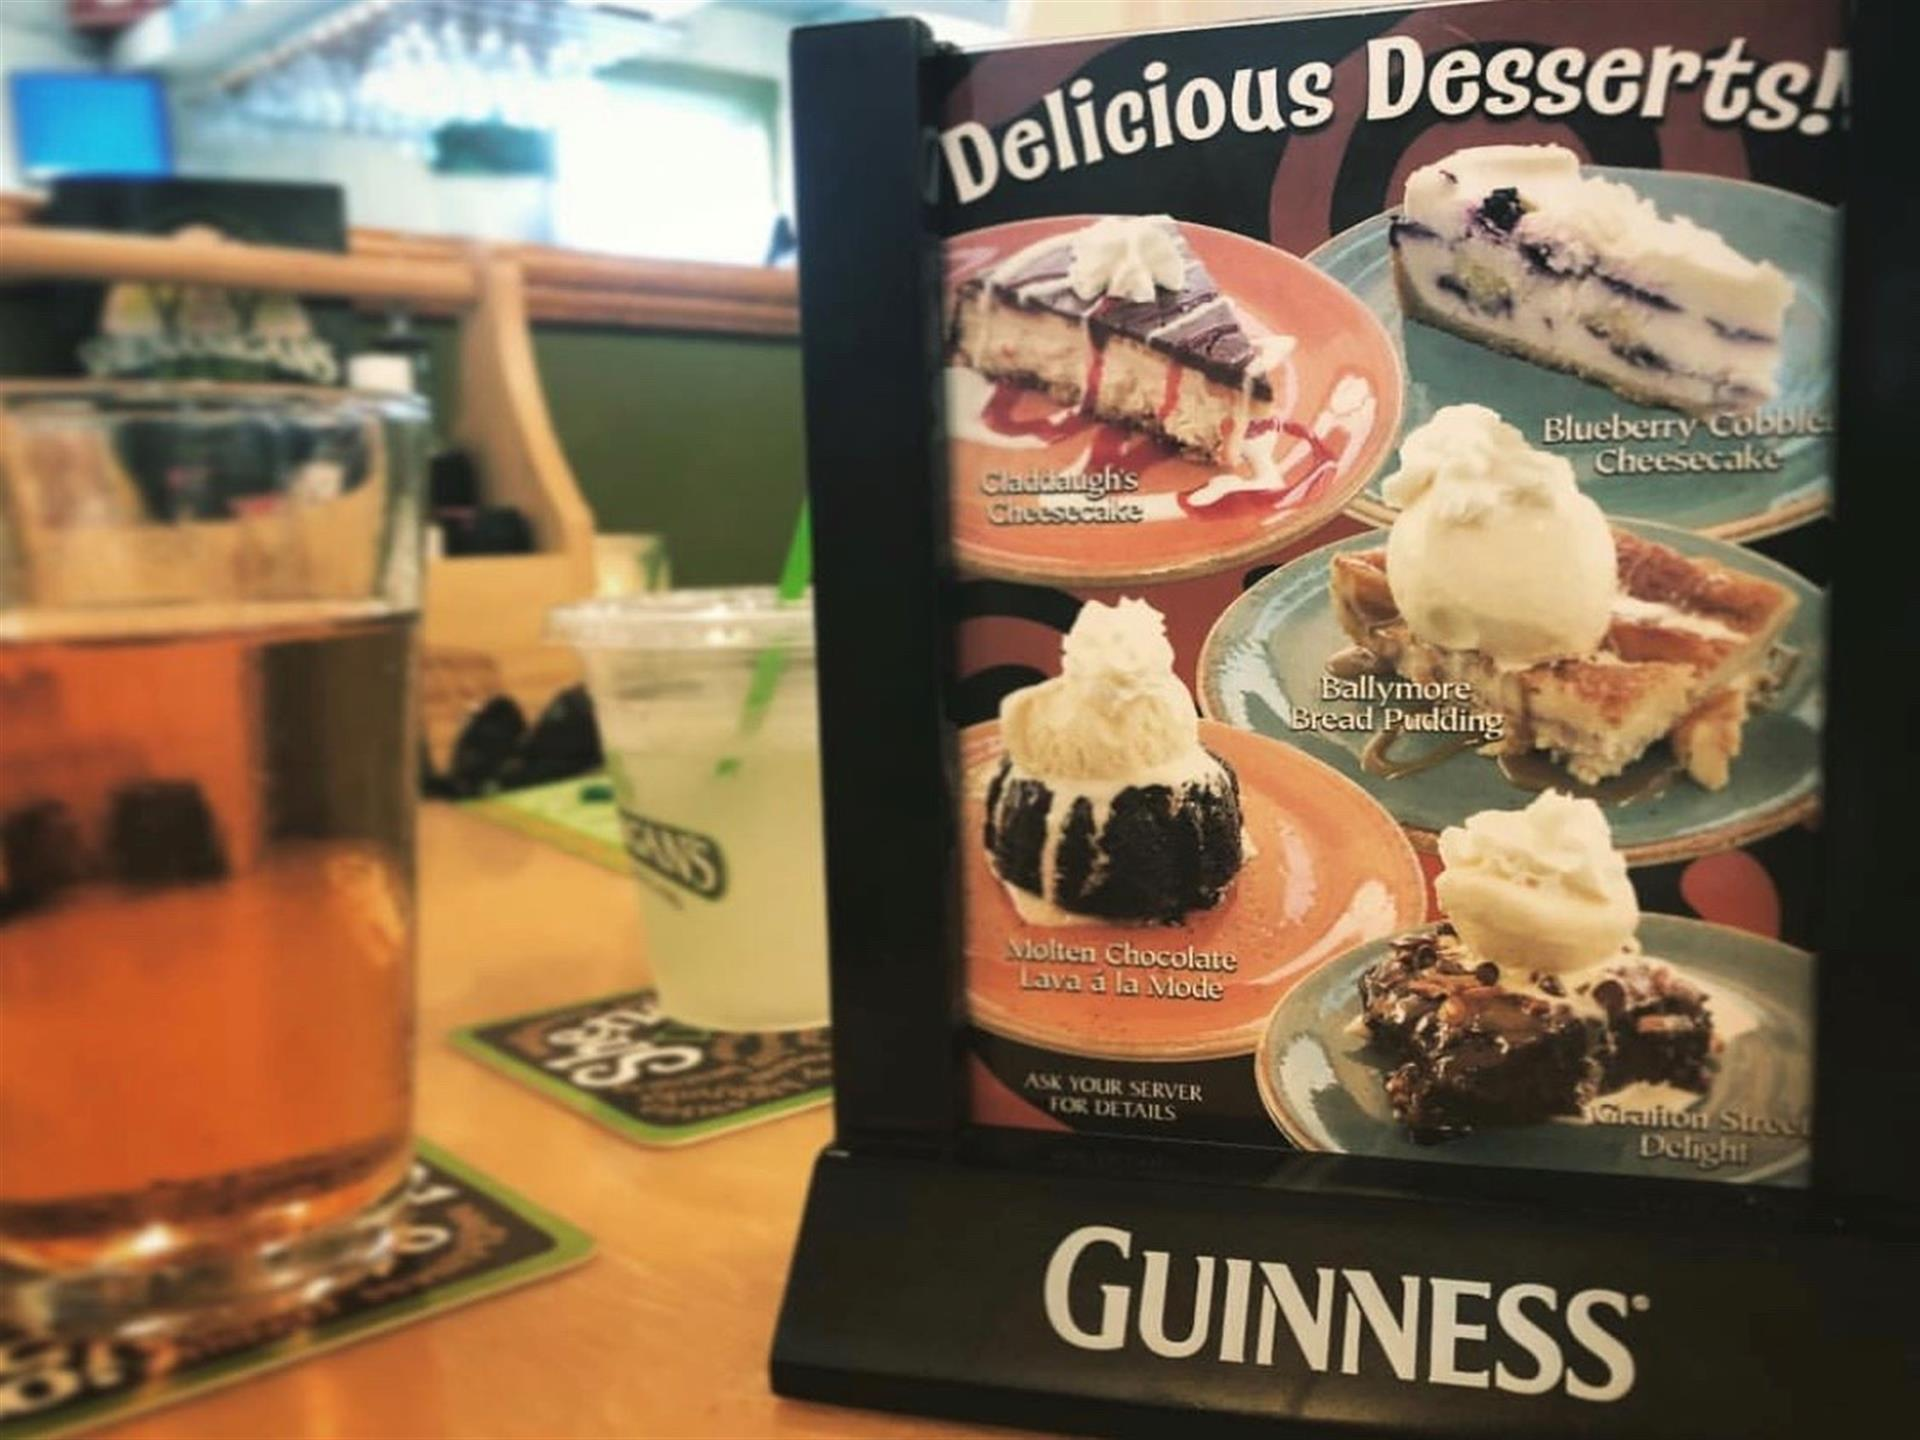 Table tent showing Delicious Desserts next to a glass of beer.